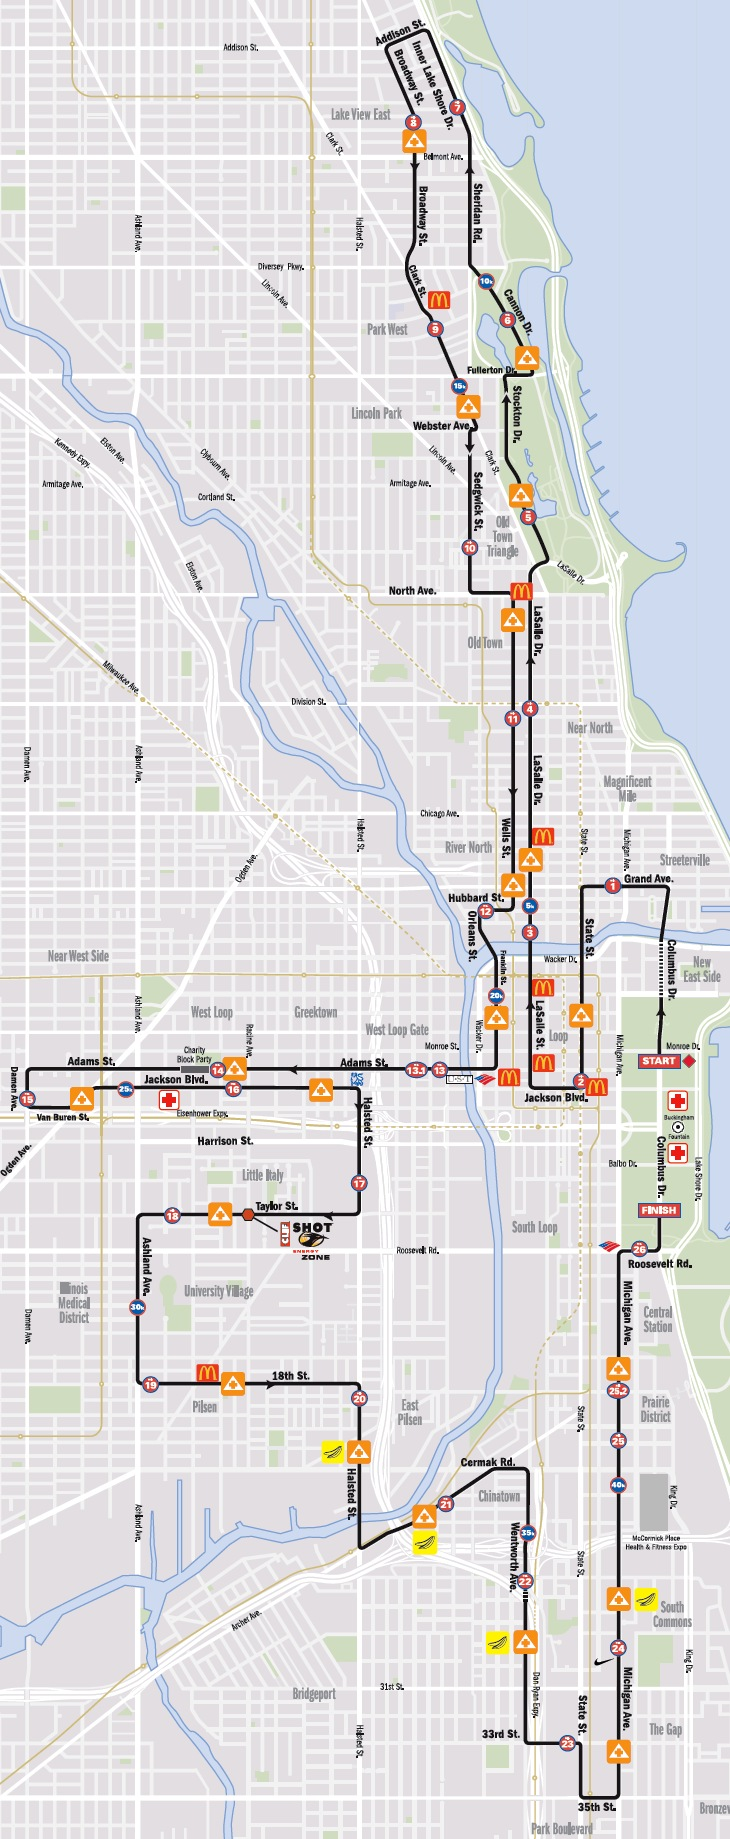 Chicago Marathon 2012 Route Map & Traffic Restrictions on chicago points of interest map, chicago zoning map, chicago road map, chicago highway map, u.s. railroad map, chicago u2 map, chicago county map, chicago toll road system, chicago airspace map, chicago on state map, chicago parking map, chicago location on map, chicago safety map, chicago city map, chicago gas prices, chicago facebook, chicago police map, chicago radar map, chicago driving map,